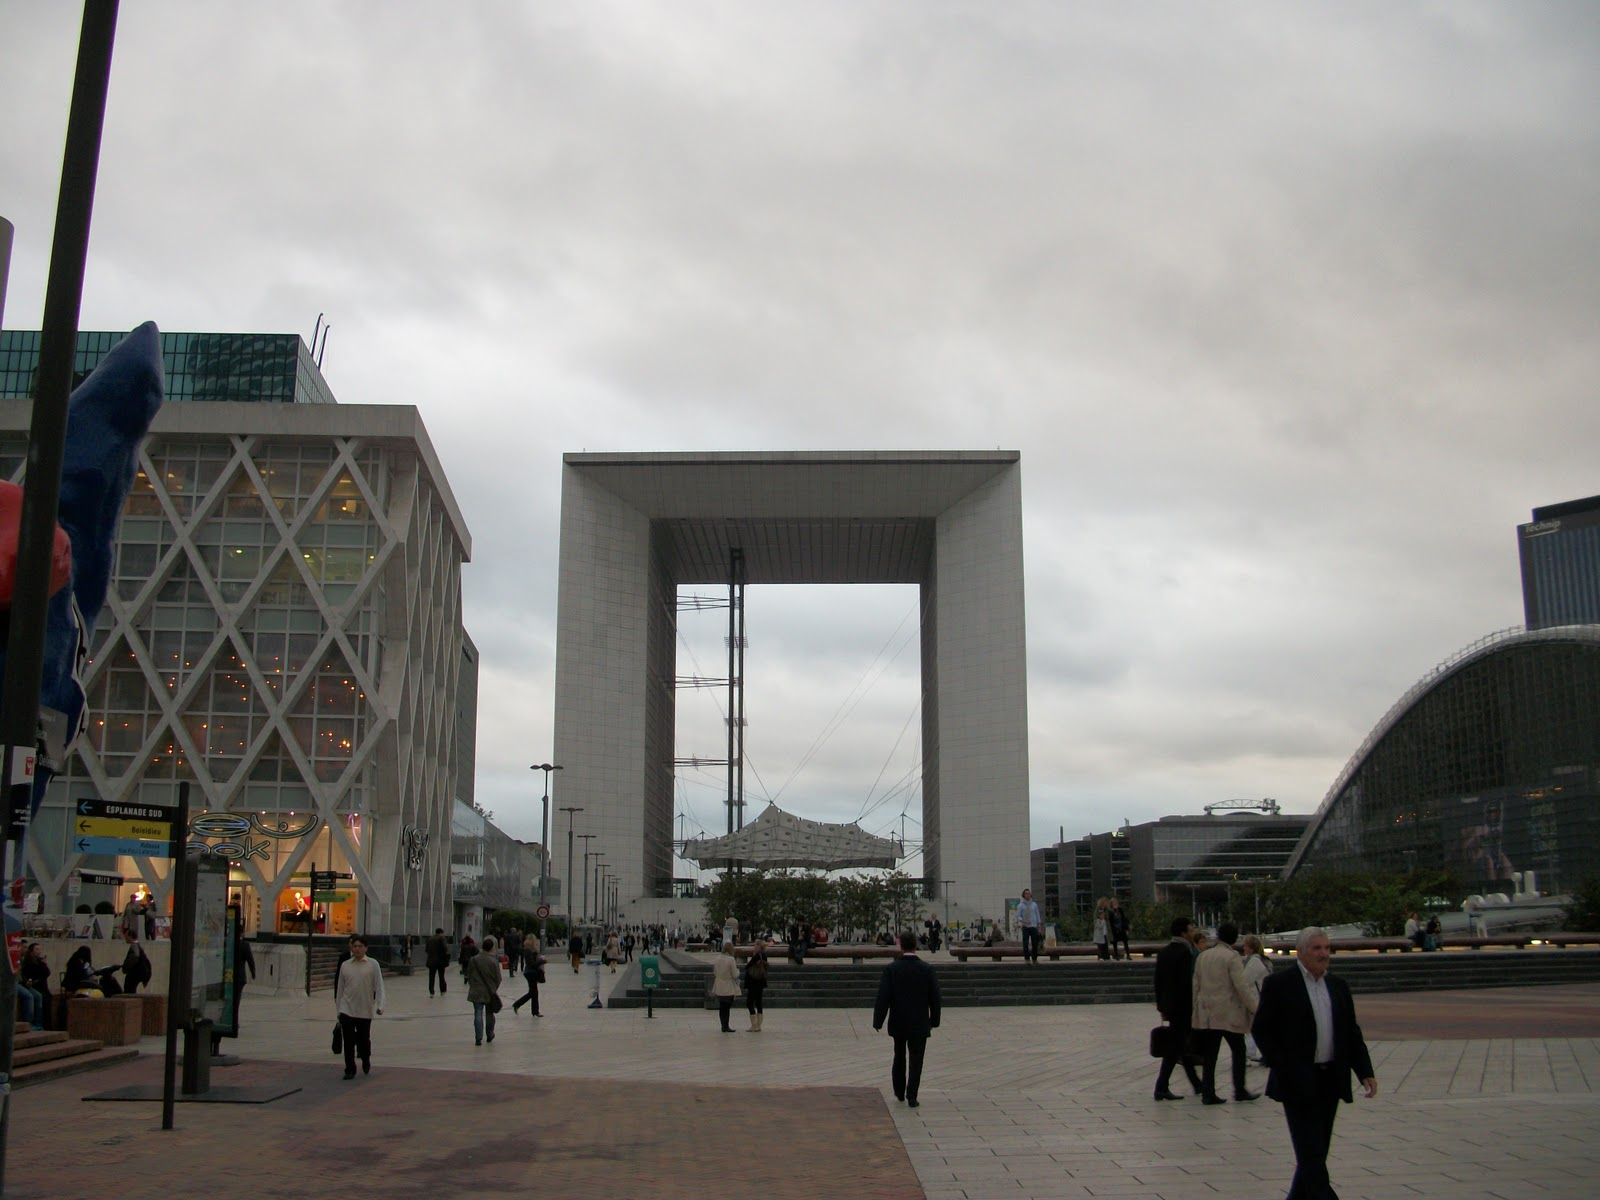 Castorama la defense lovely horaire castorama la defense - Horaire castorama bron ...